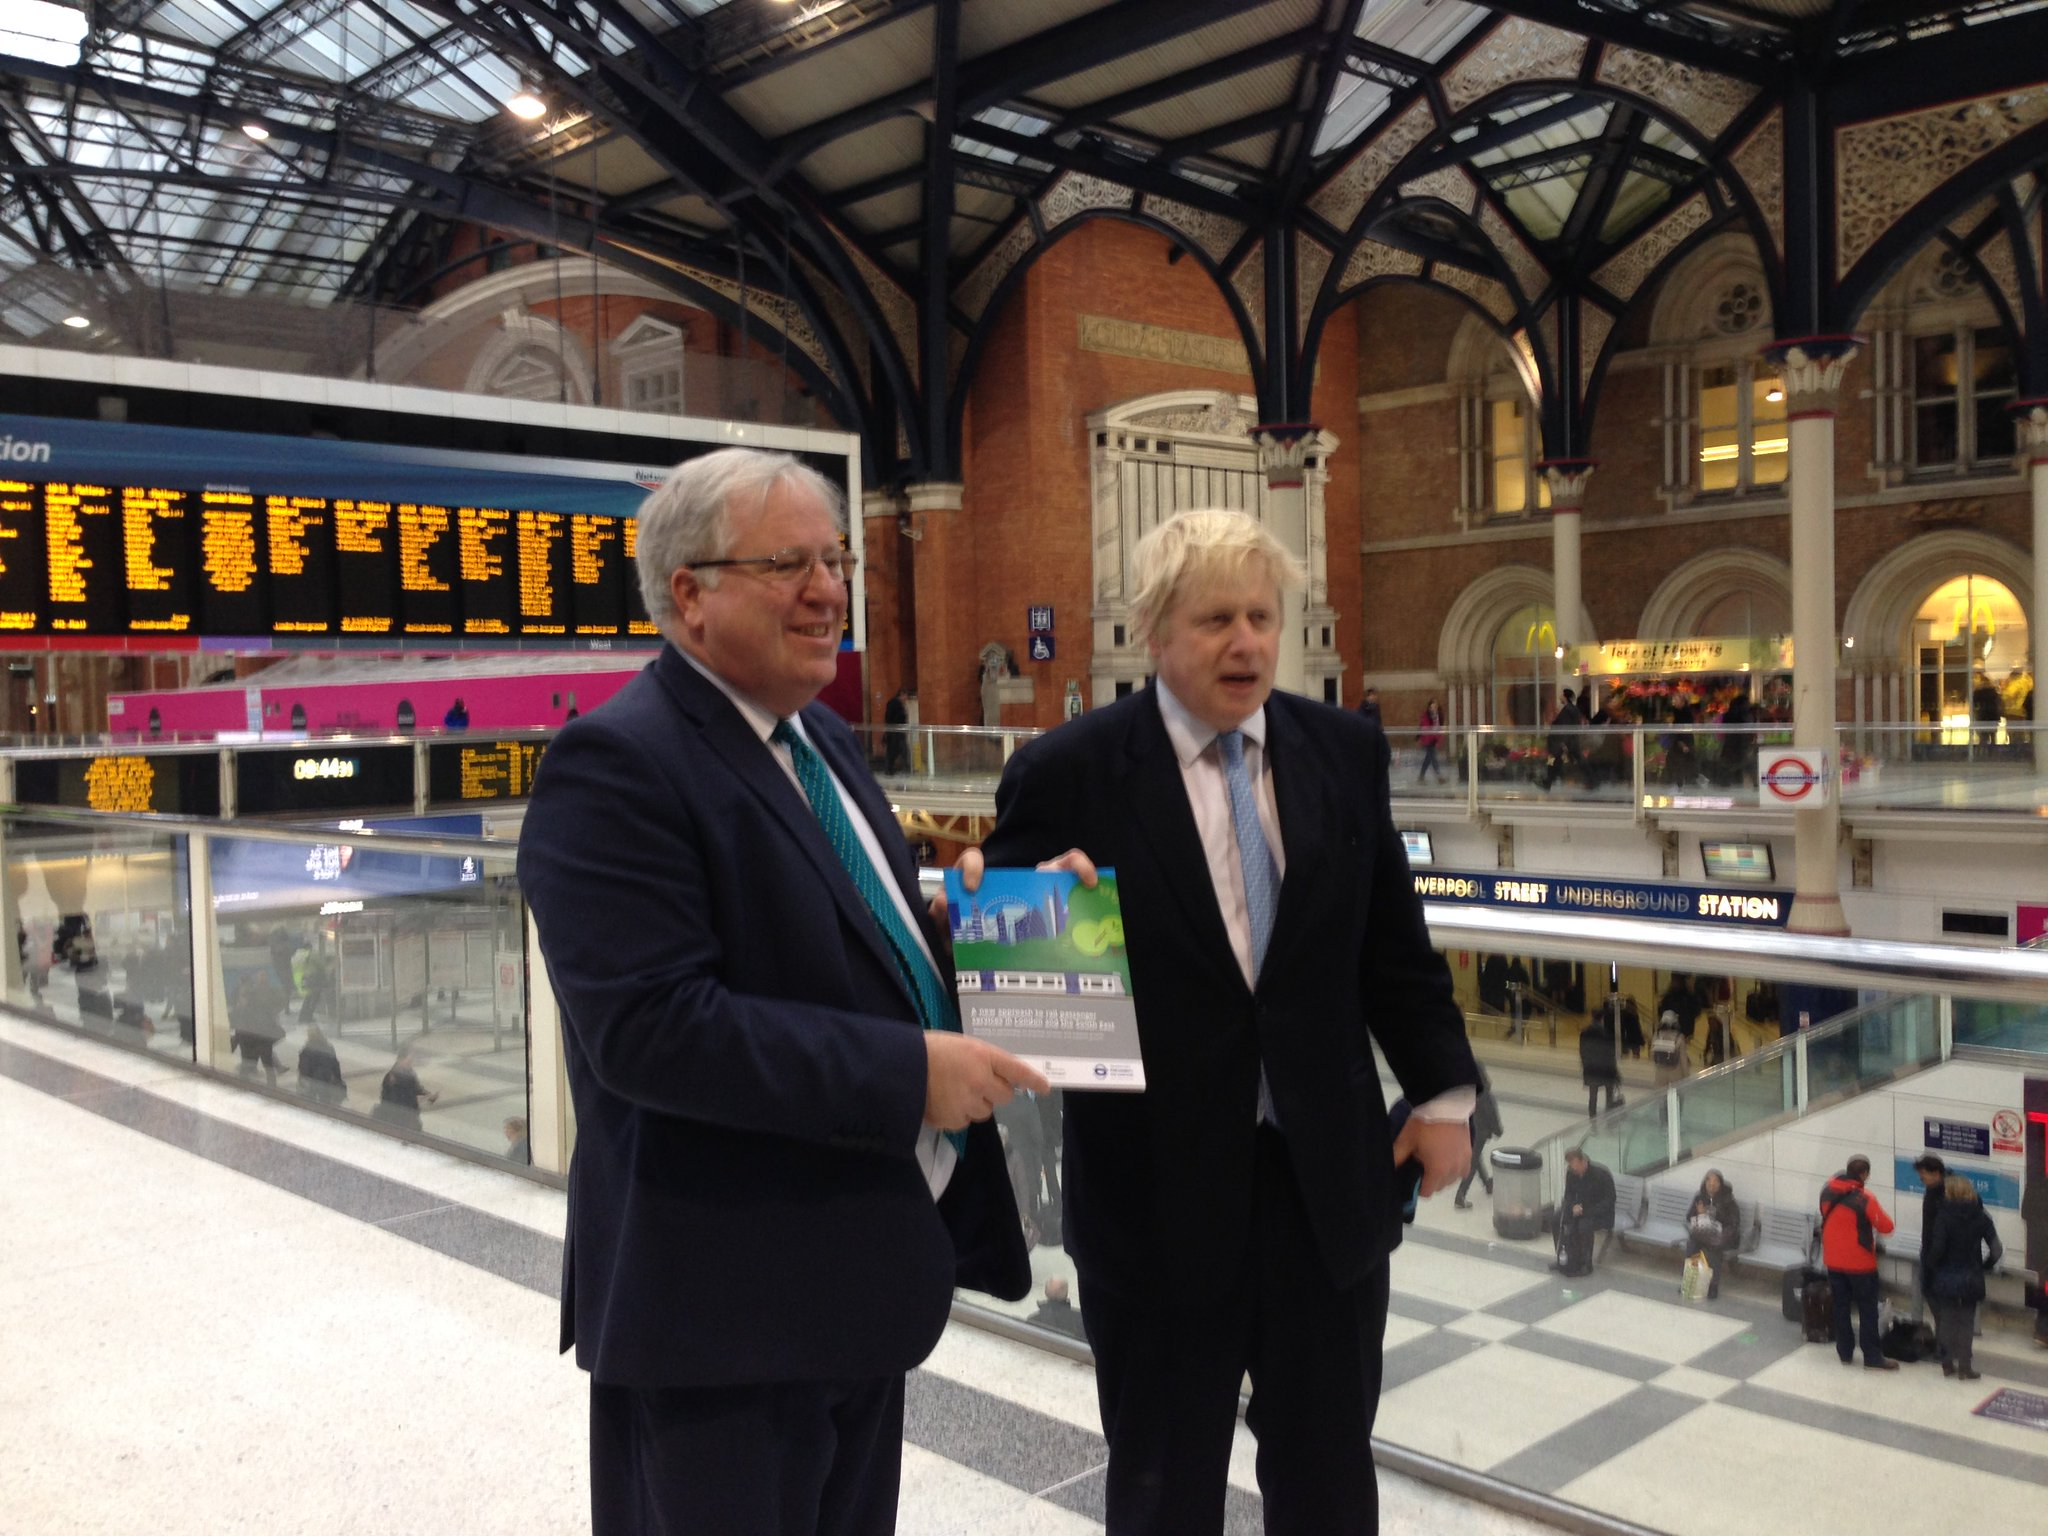 Great news for Londoners that @TfL to help run all surbaban rail in the city. Turn and up go metro style services https://t.co/y8NZfevAmW